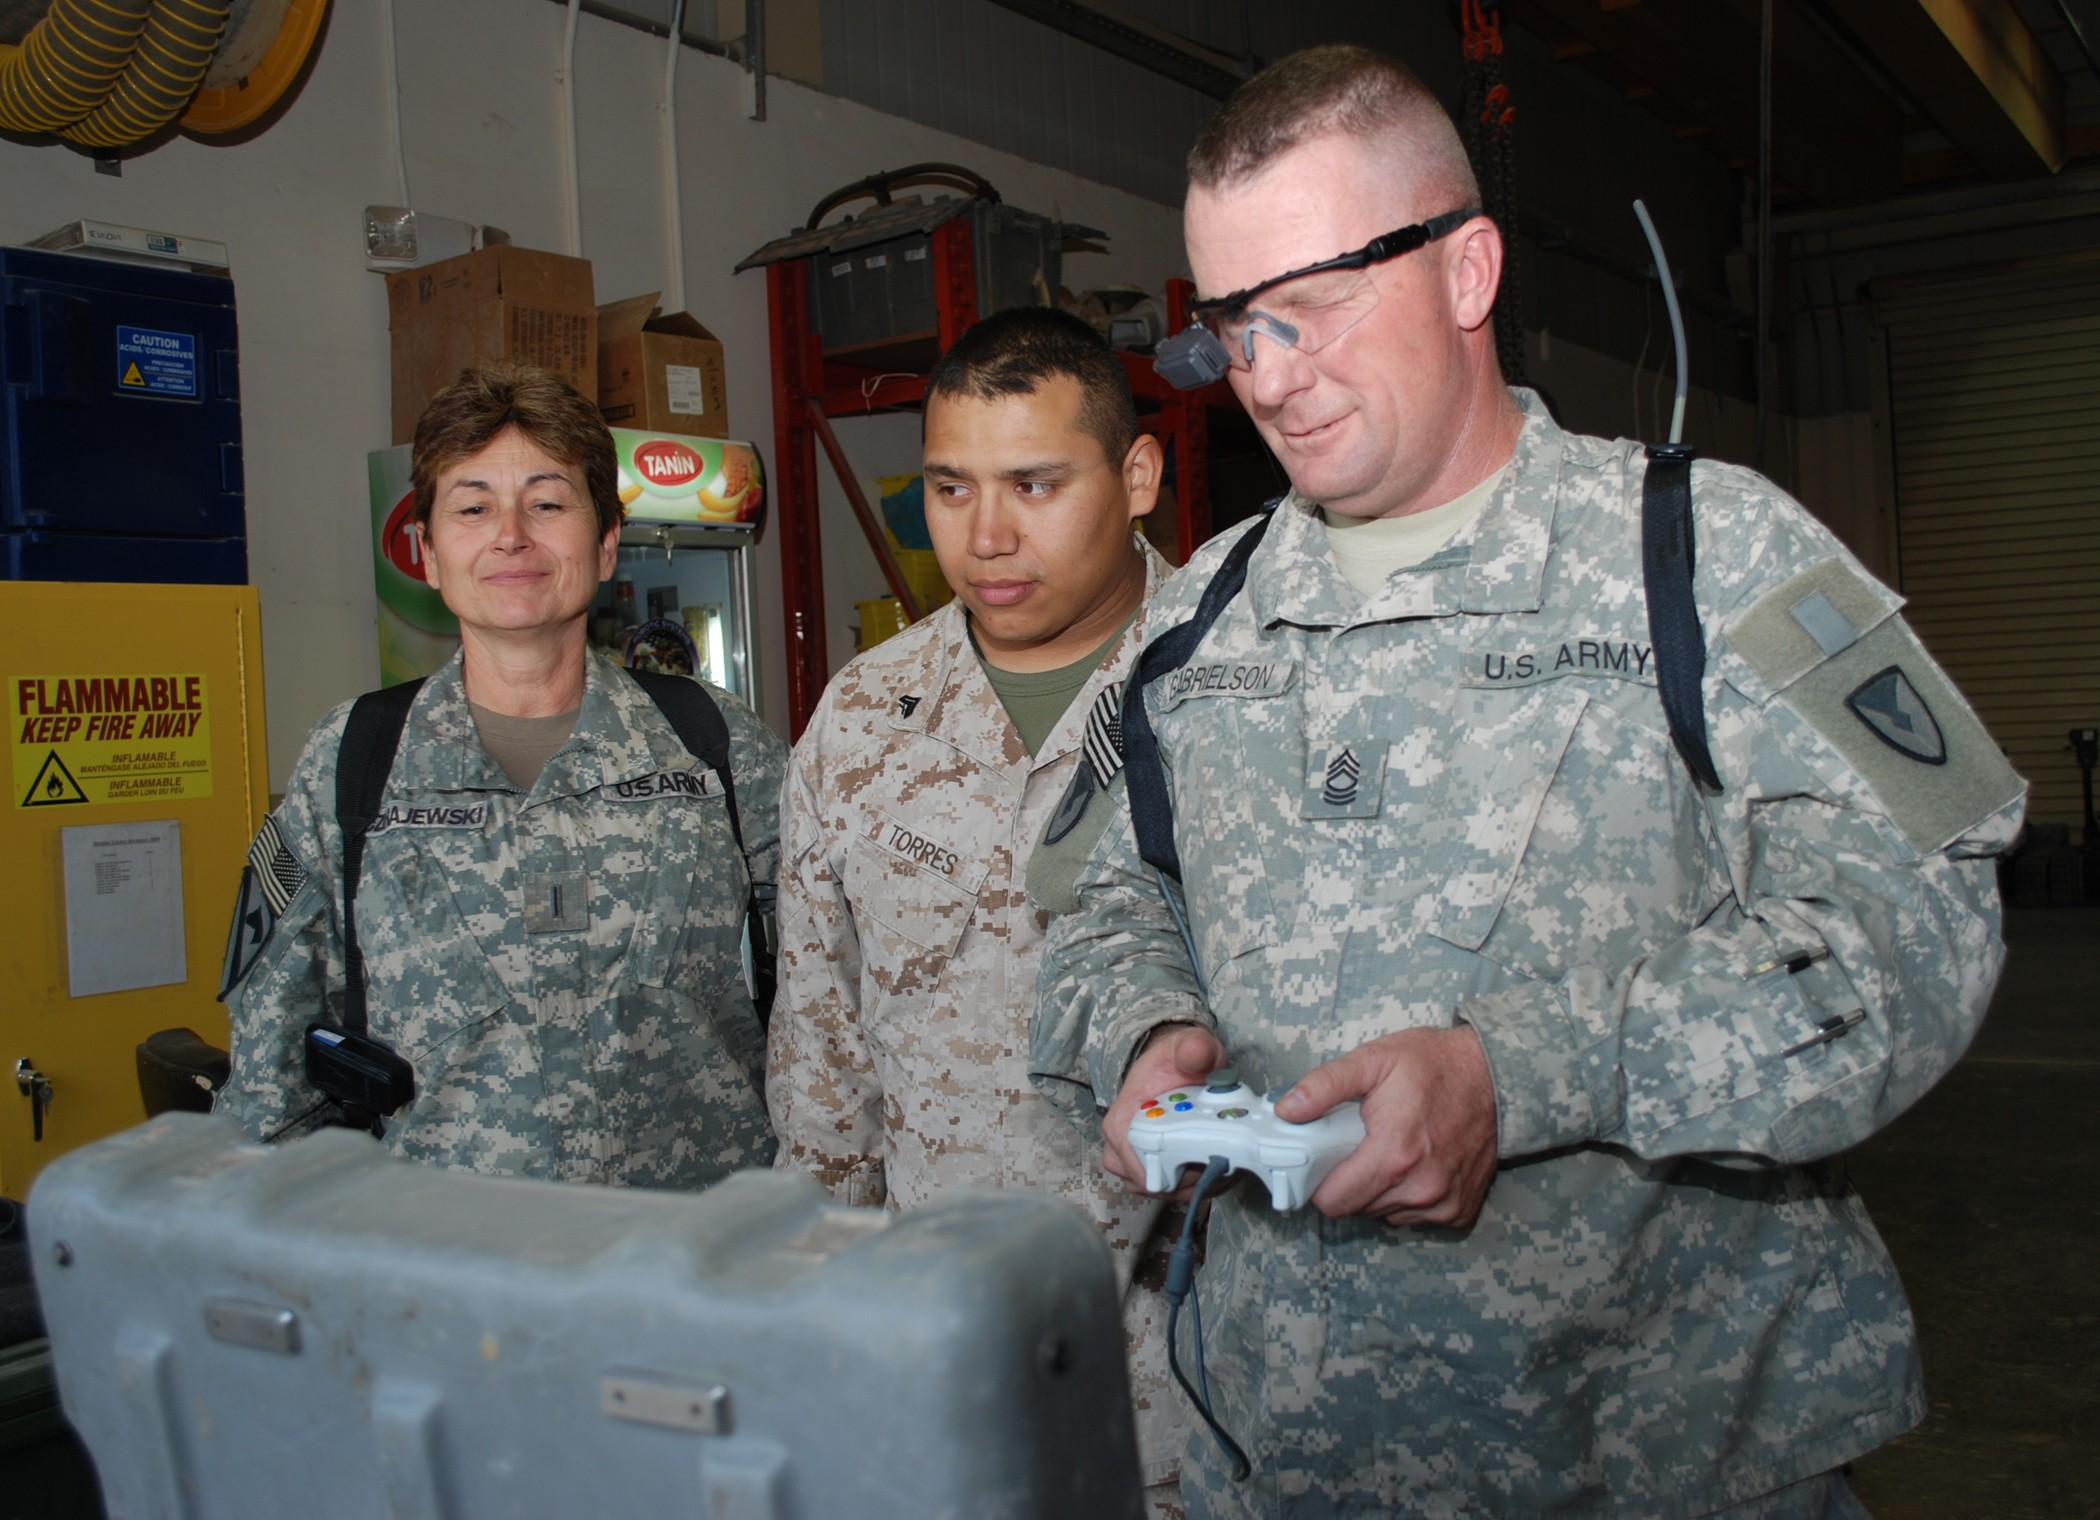 Chief Warrant Officer Mary T. Czuhajewski, commander of Logistics Support Element, Multi-National Force-Baghdad and Marine Cpl. Jose A. Torres look on as Master Sgt.  Kevin J. Gabrielson, 1st Battalion, 402nd Army Field Support Brigade, operates a PackBot using a  heads-up display at Joint Robotics Repair Detachment at Victory Base Complex, Baghdad, Iraq.